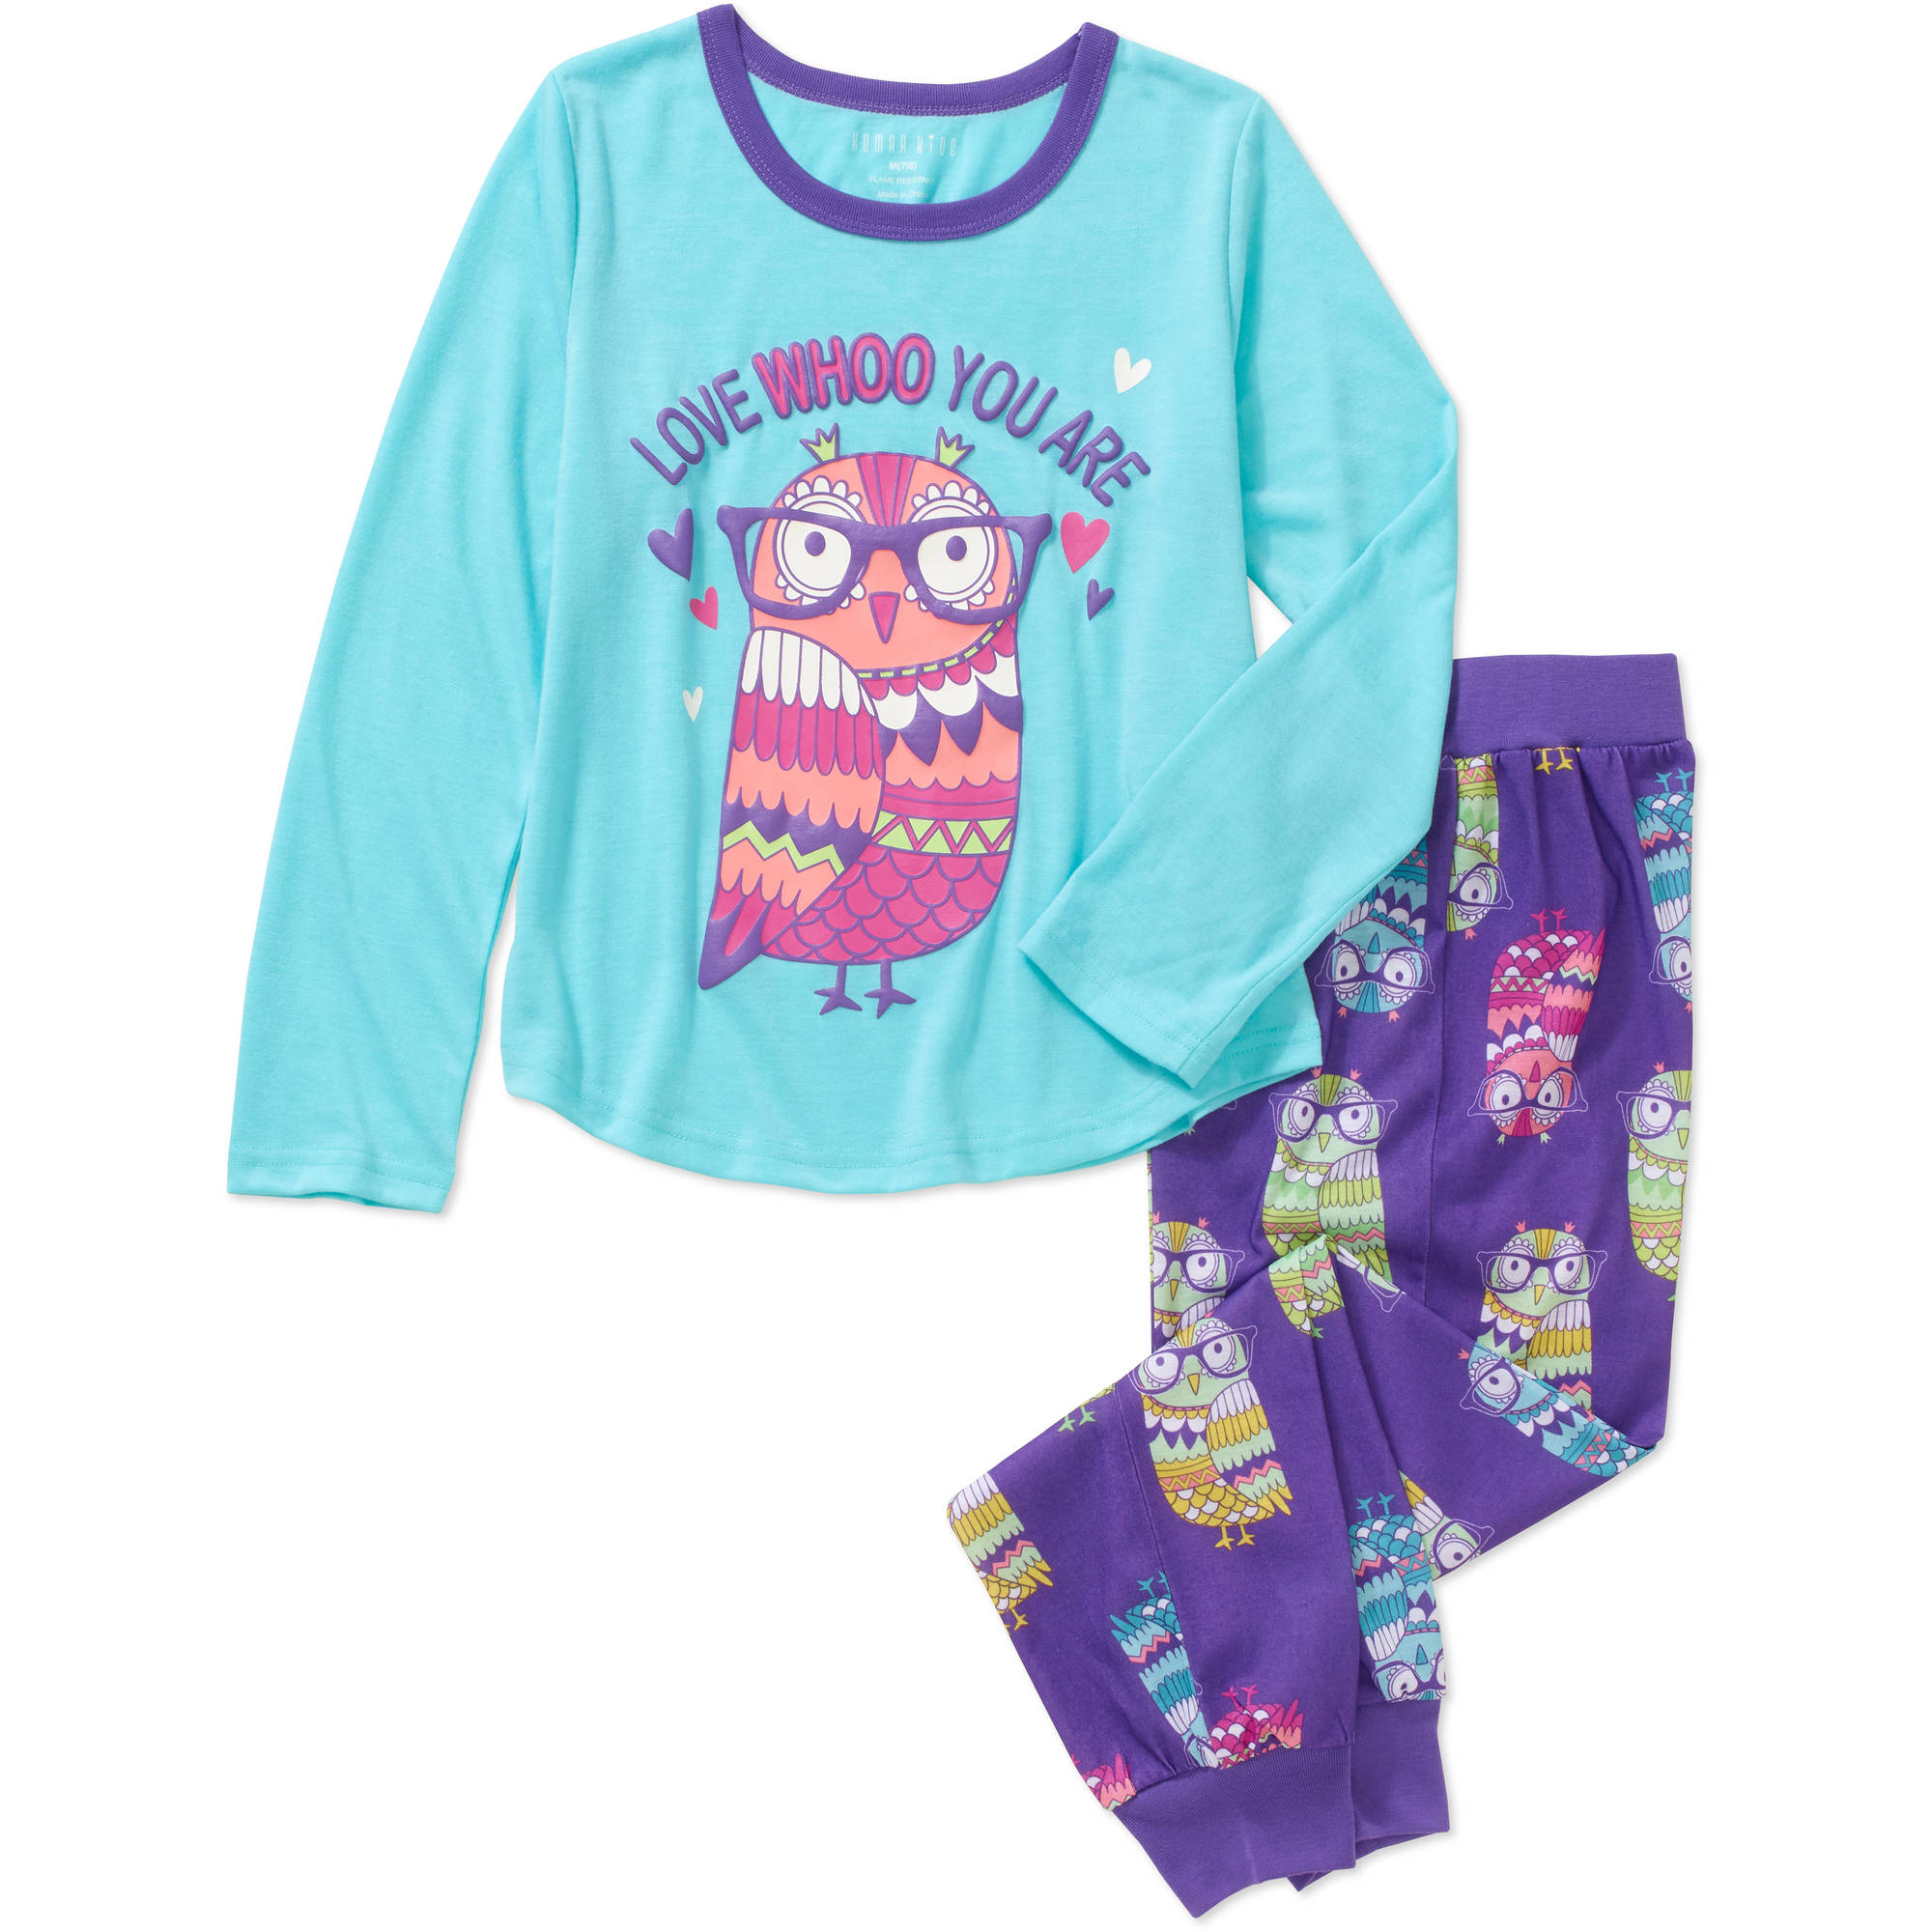 Girls' Graphic 2pc Sleepwear Jogger Set